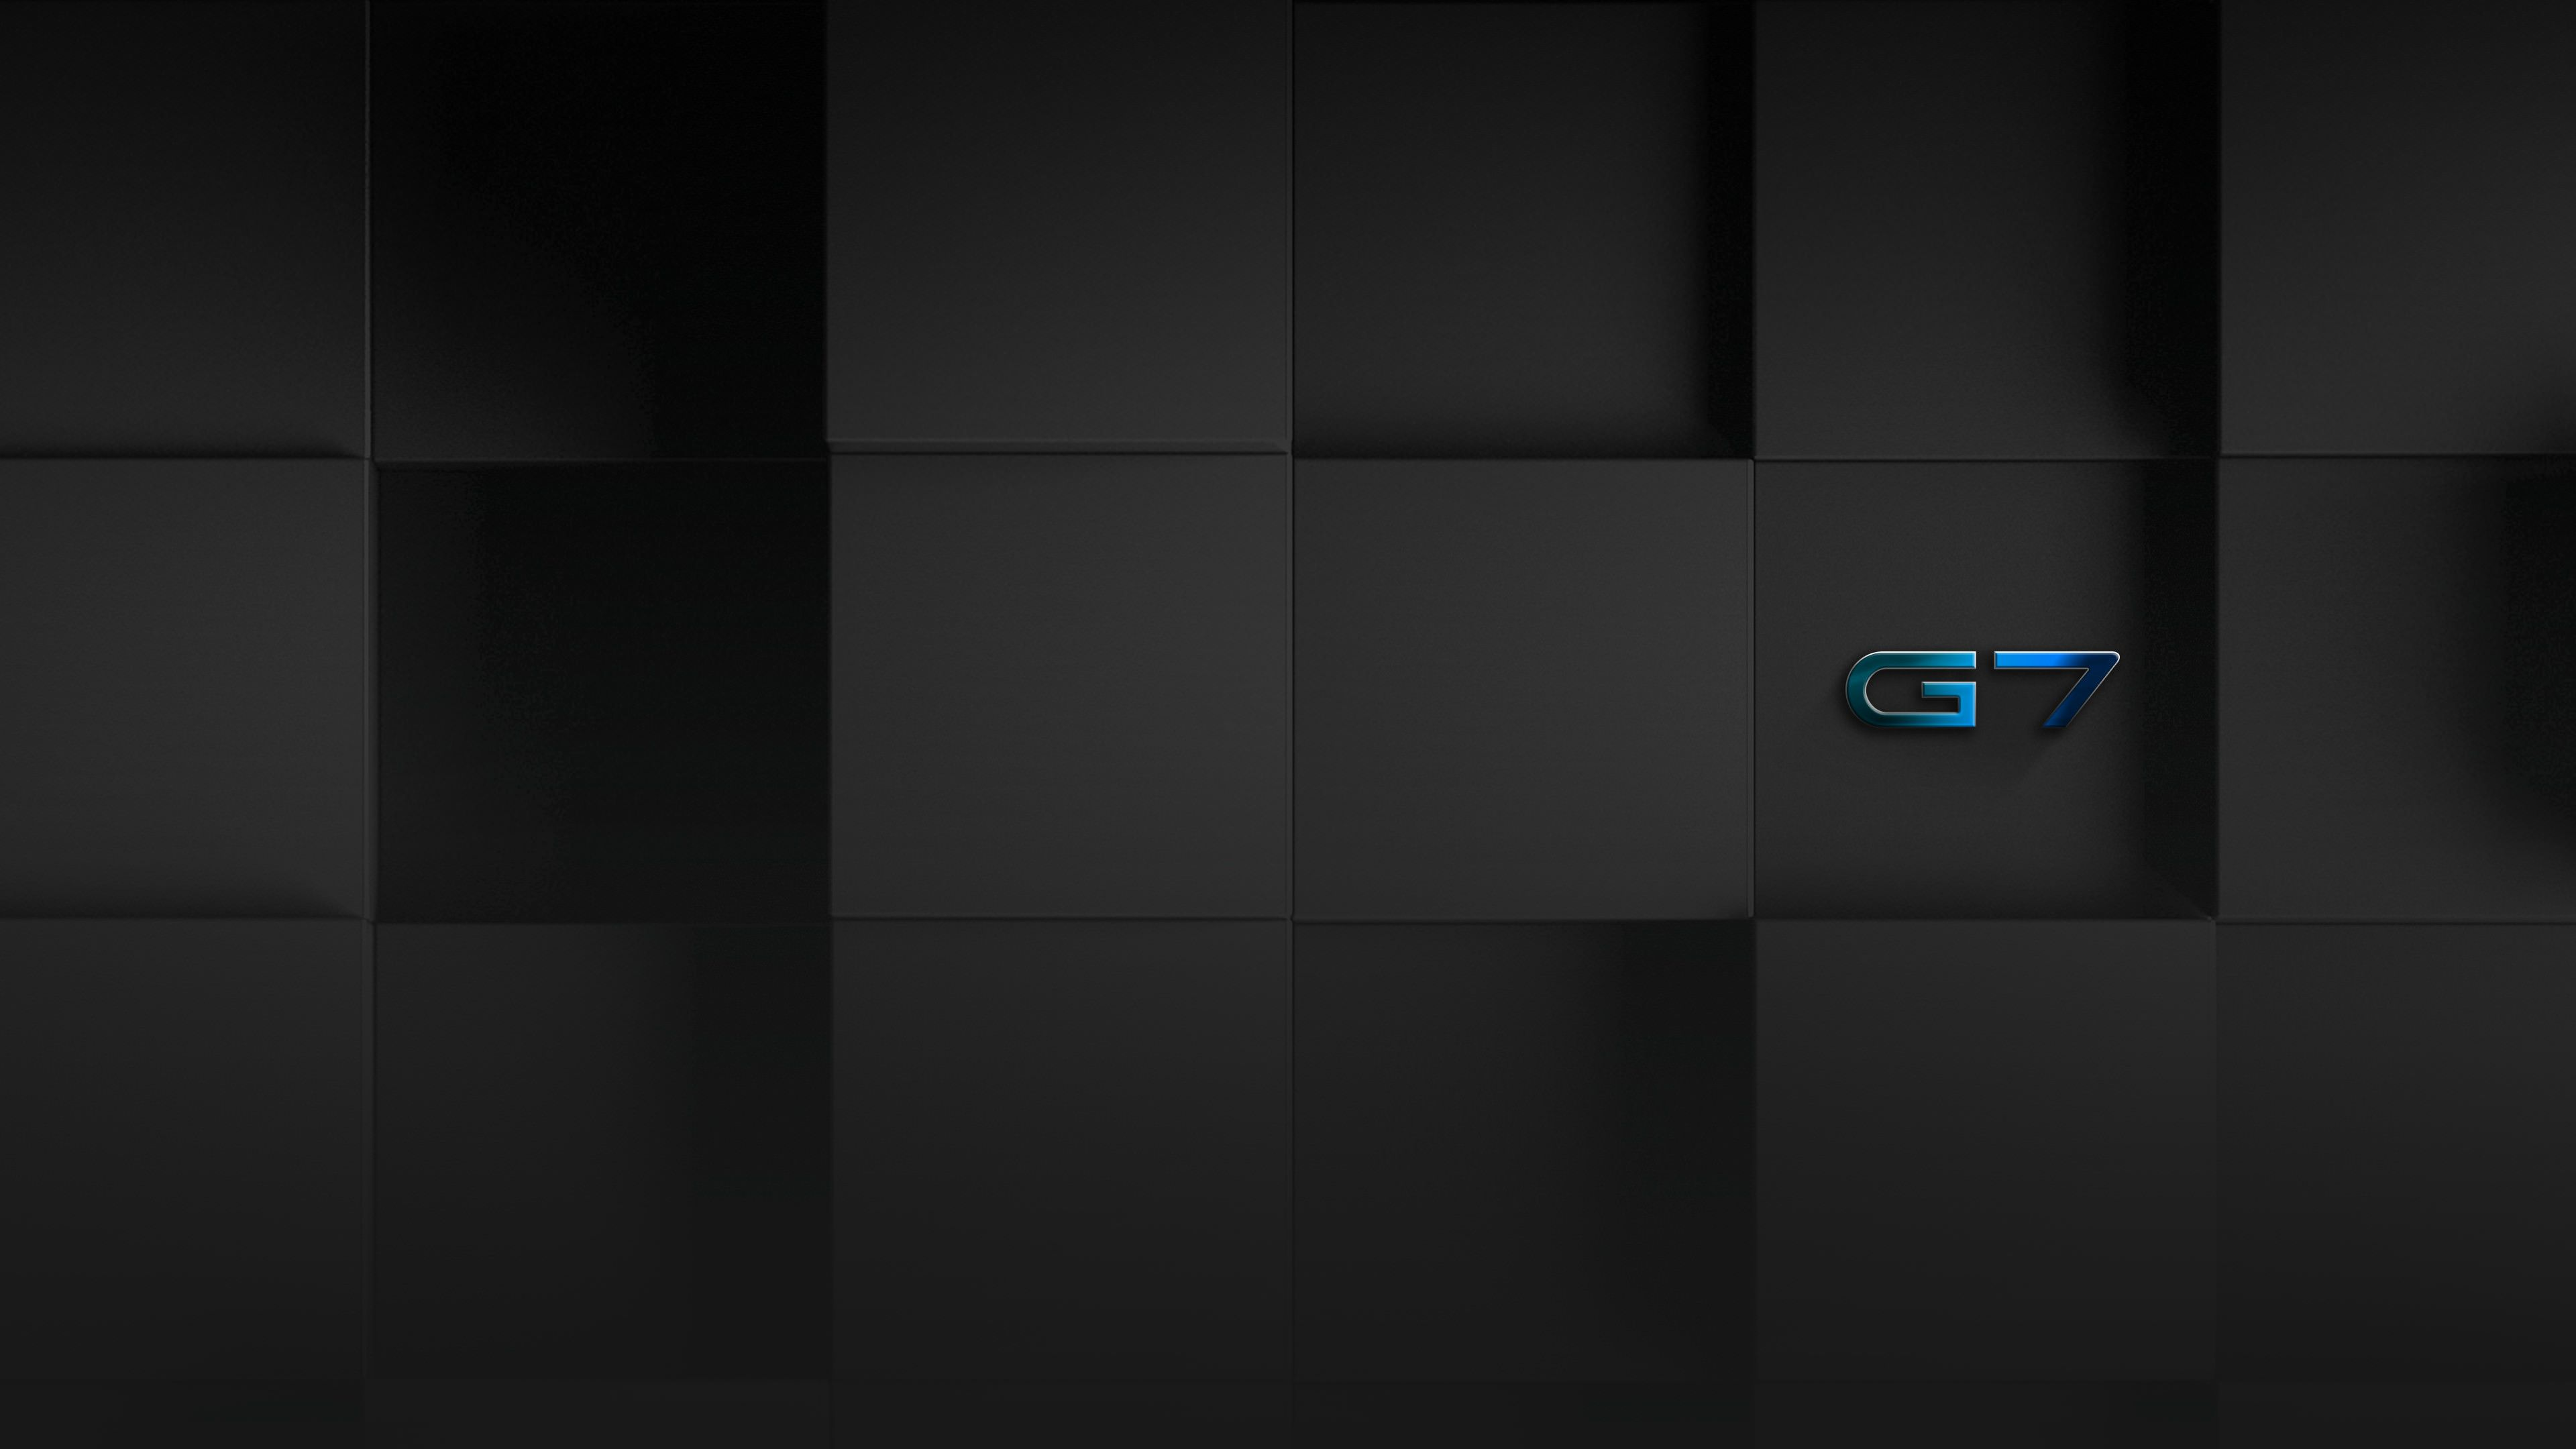 3840x2160 Does anybody have the Dell G7 Default wallpaper? Mine was ...